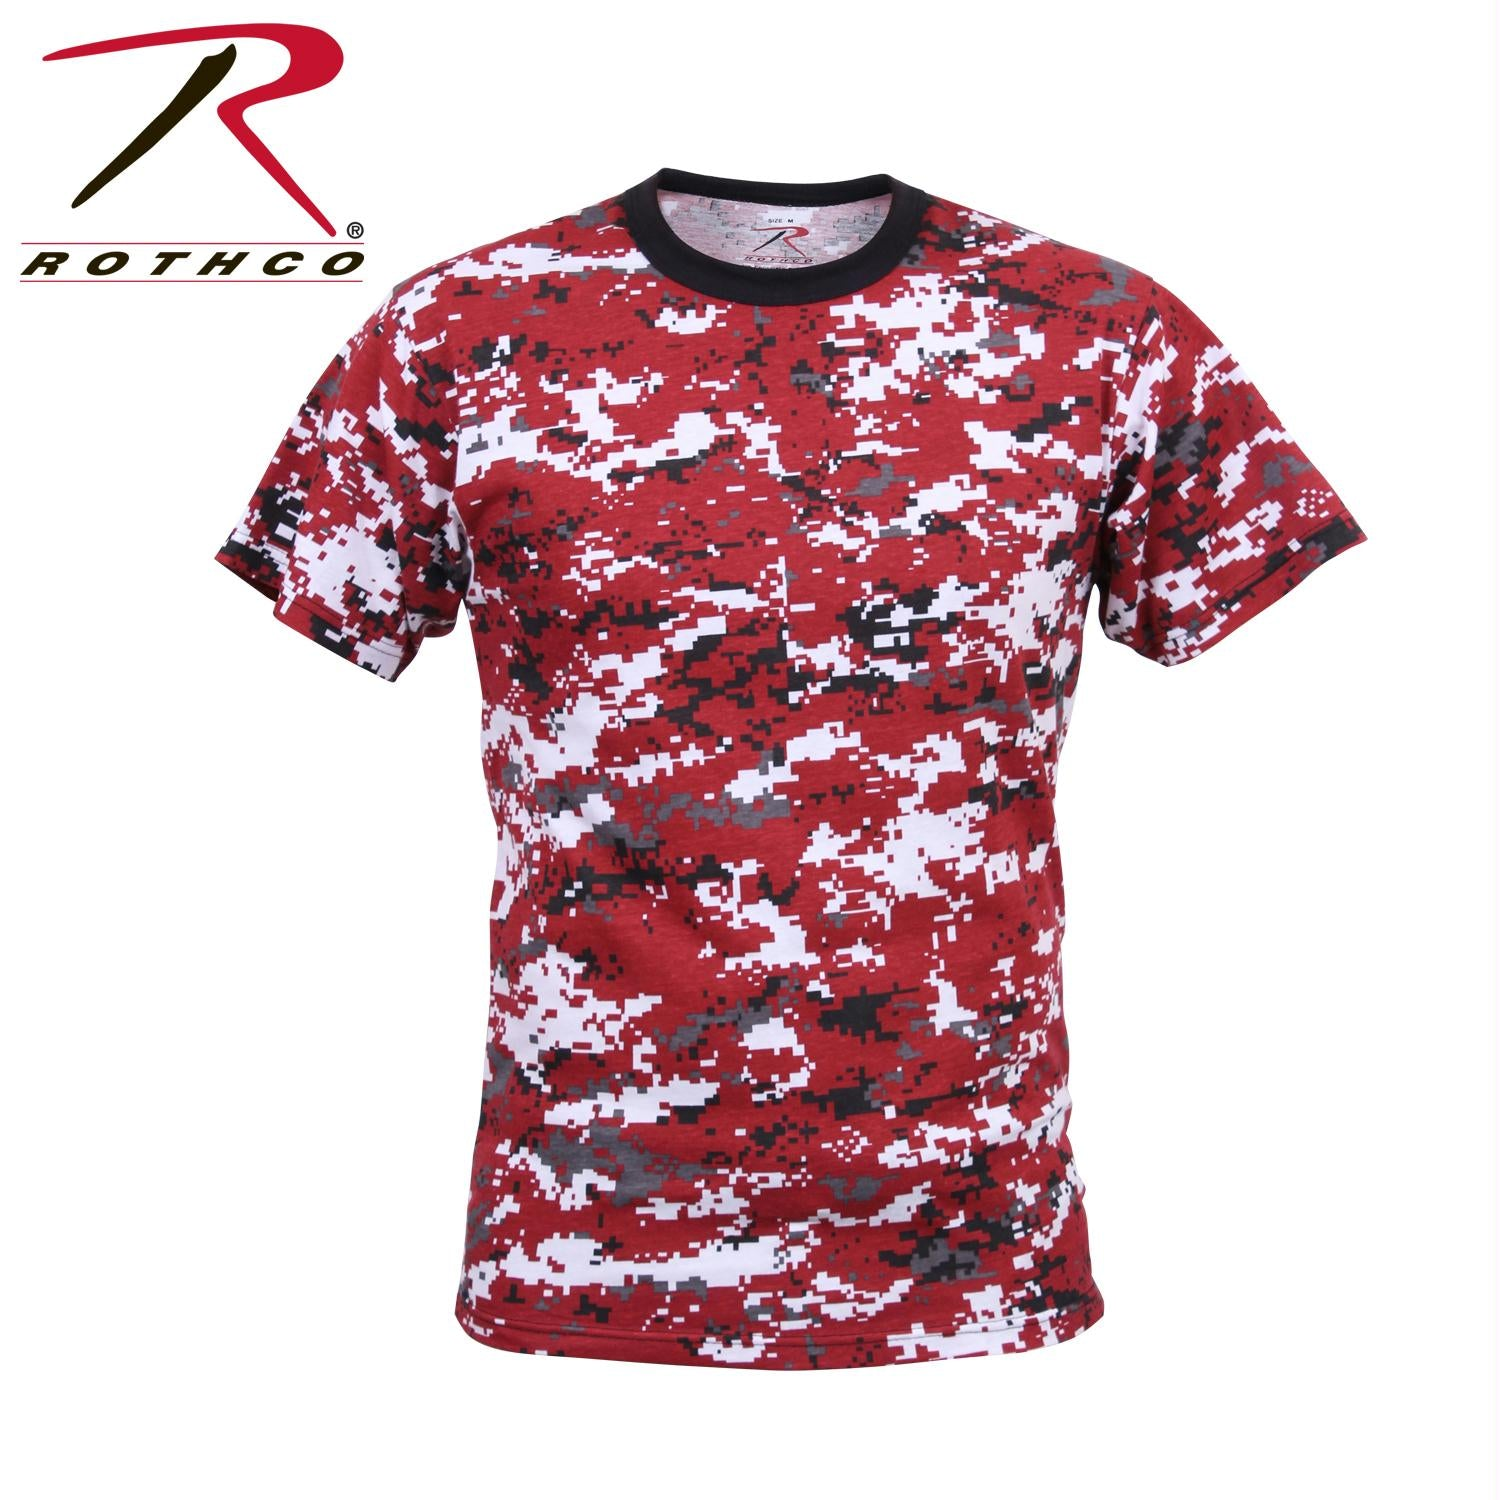 Rothco Digital Camo T-Shirt